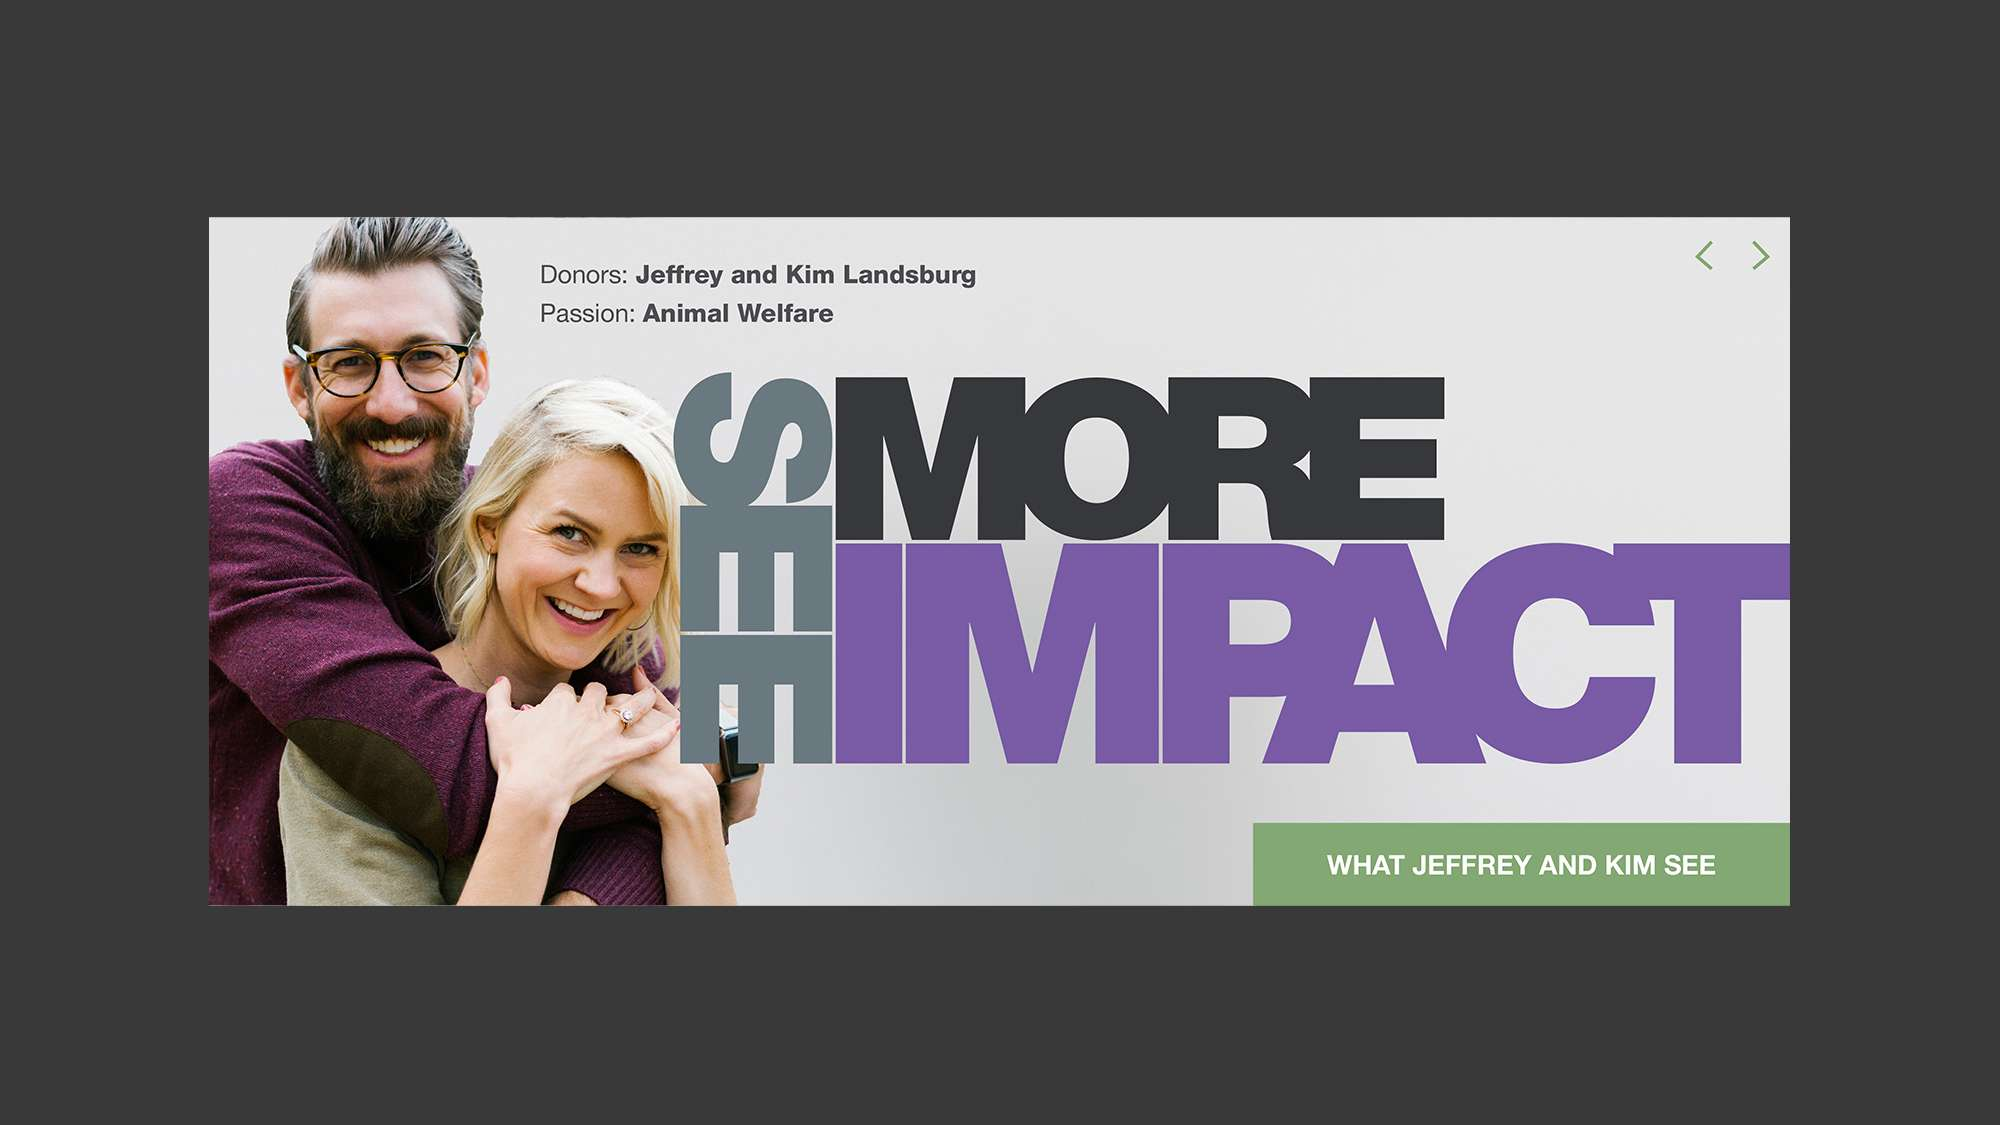 See more impact. Portrait of donors Jeffrey and Kim Landsburg.